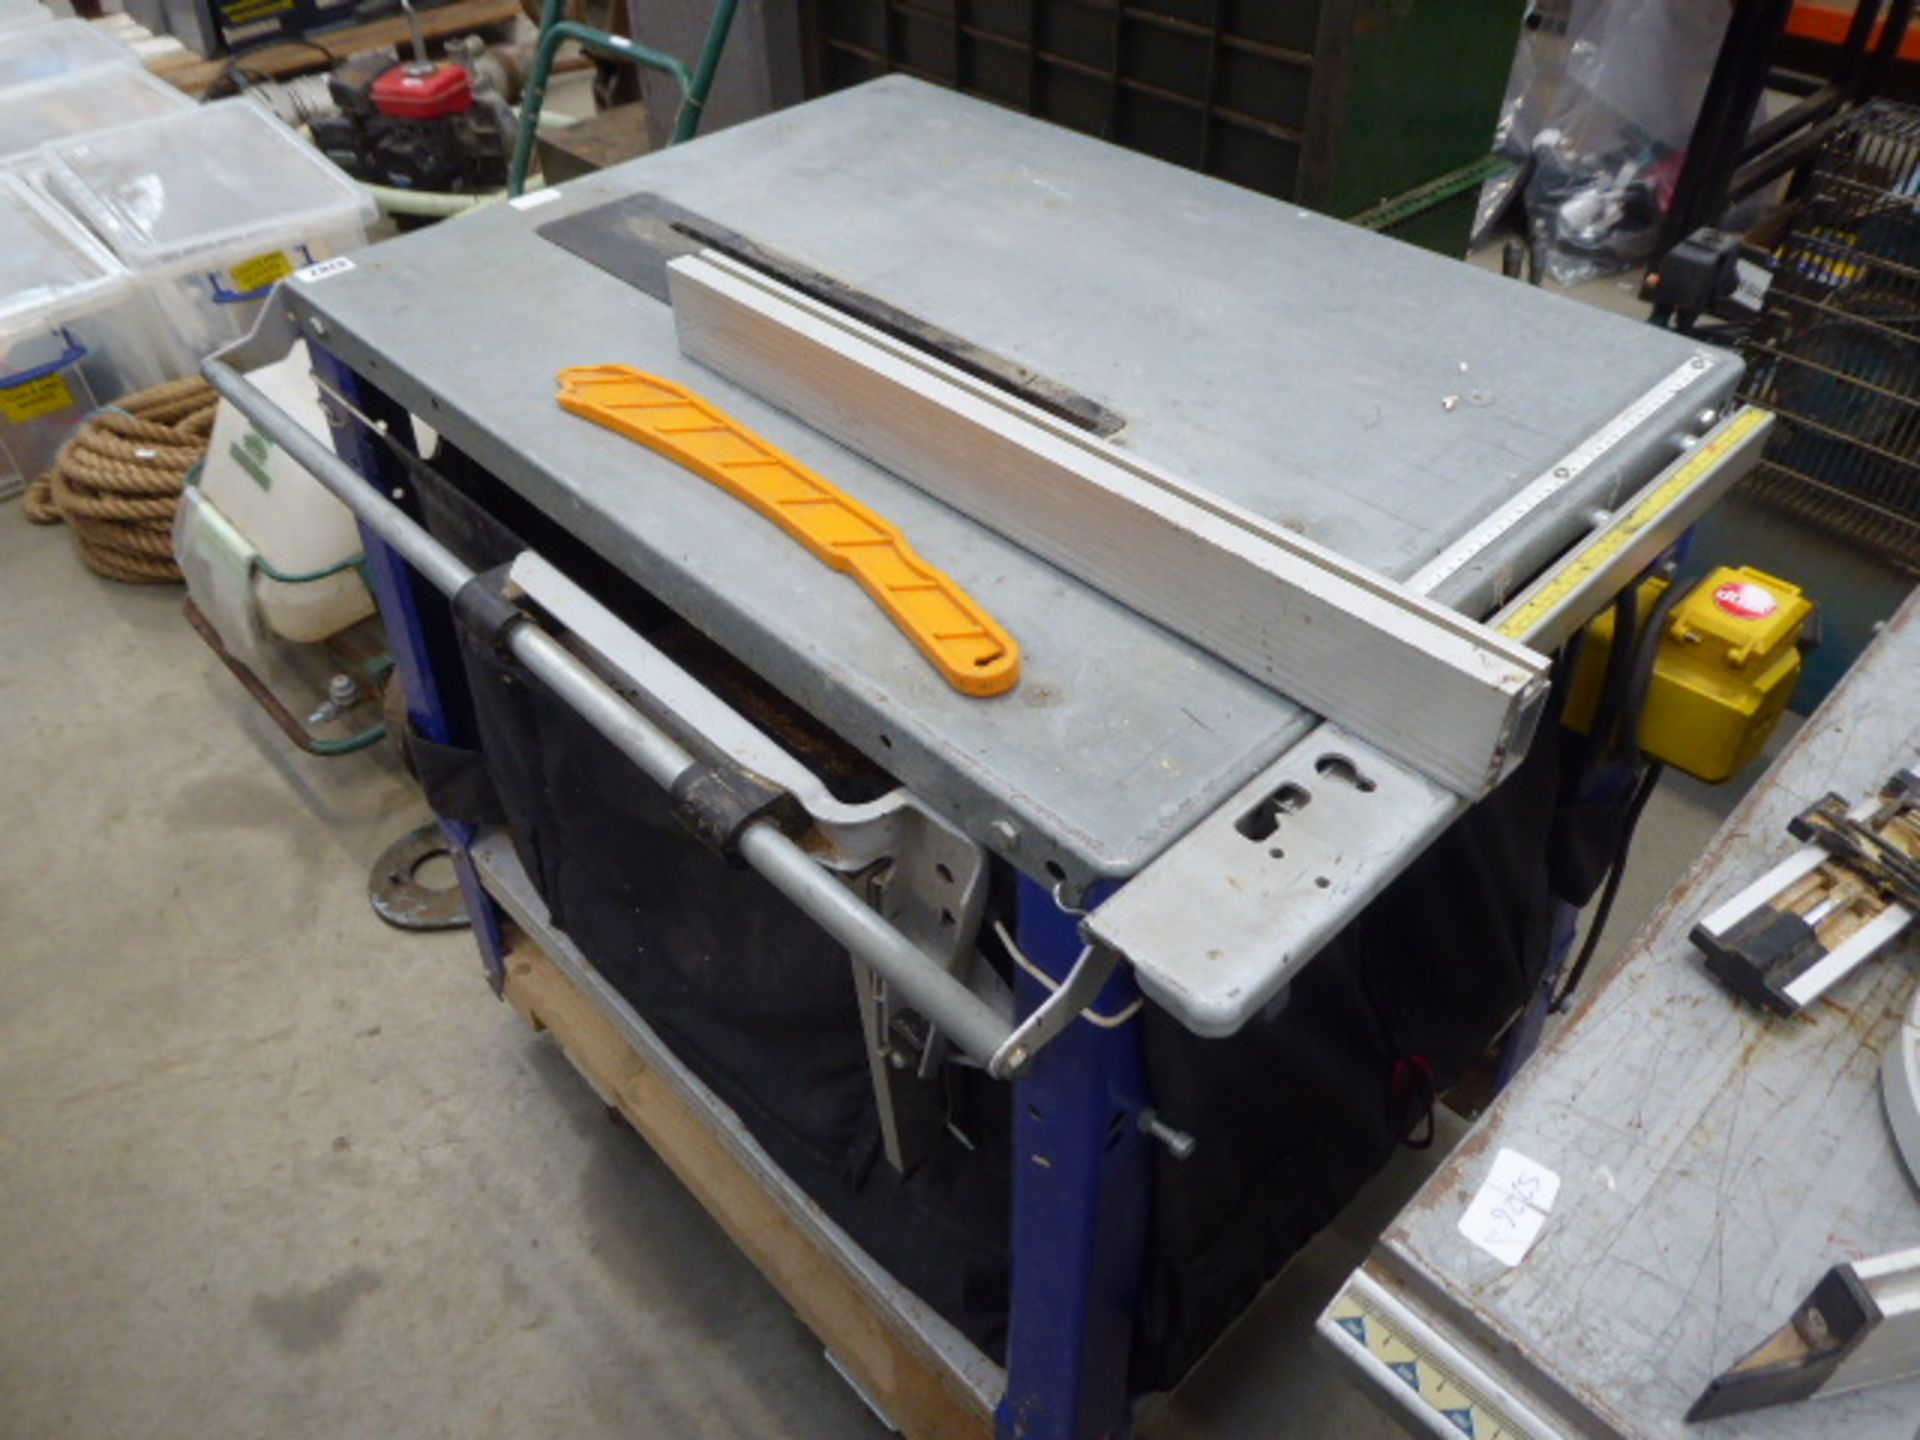 An Elektra Beckum THS315 table saw